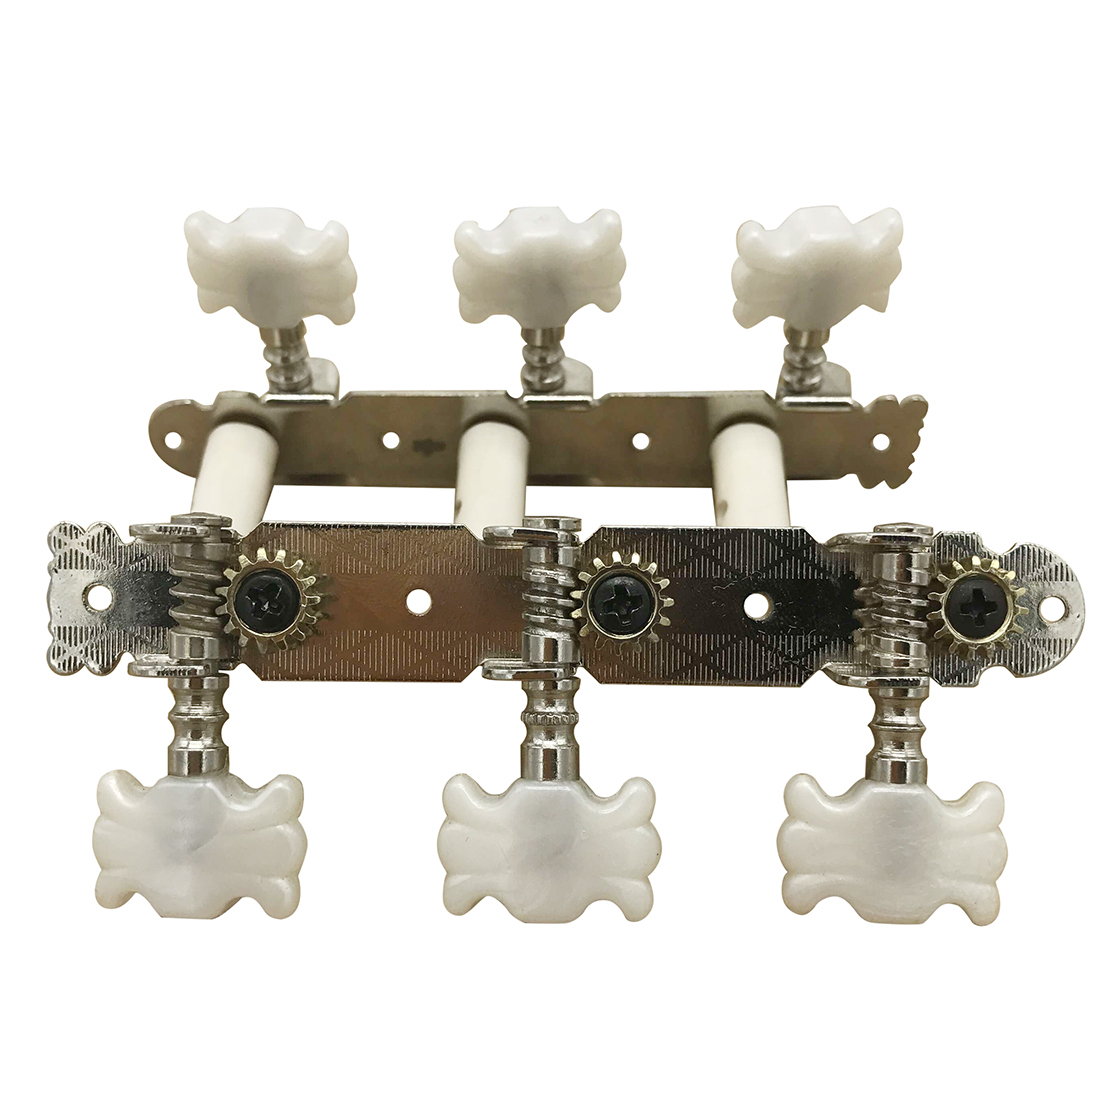 1 Pair Silver+white Classical Guitar Assembly Tuner Tuning Keys Pegs Machine Head